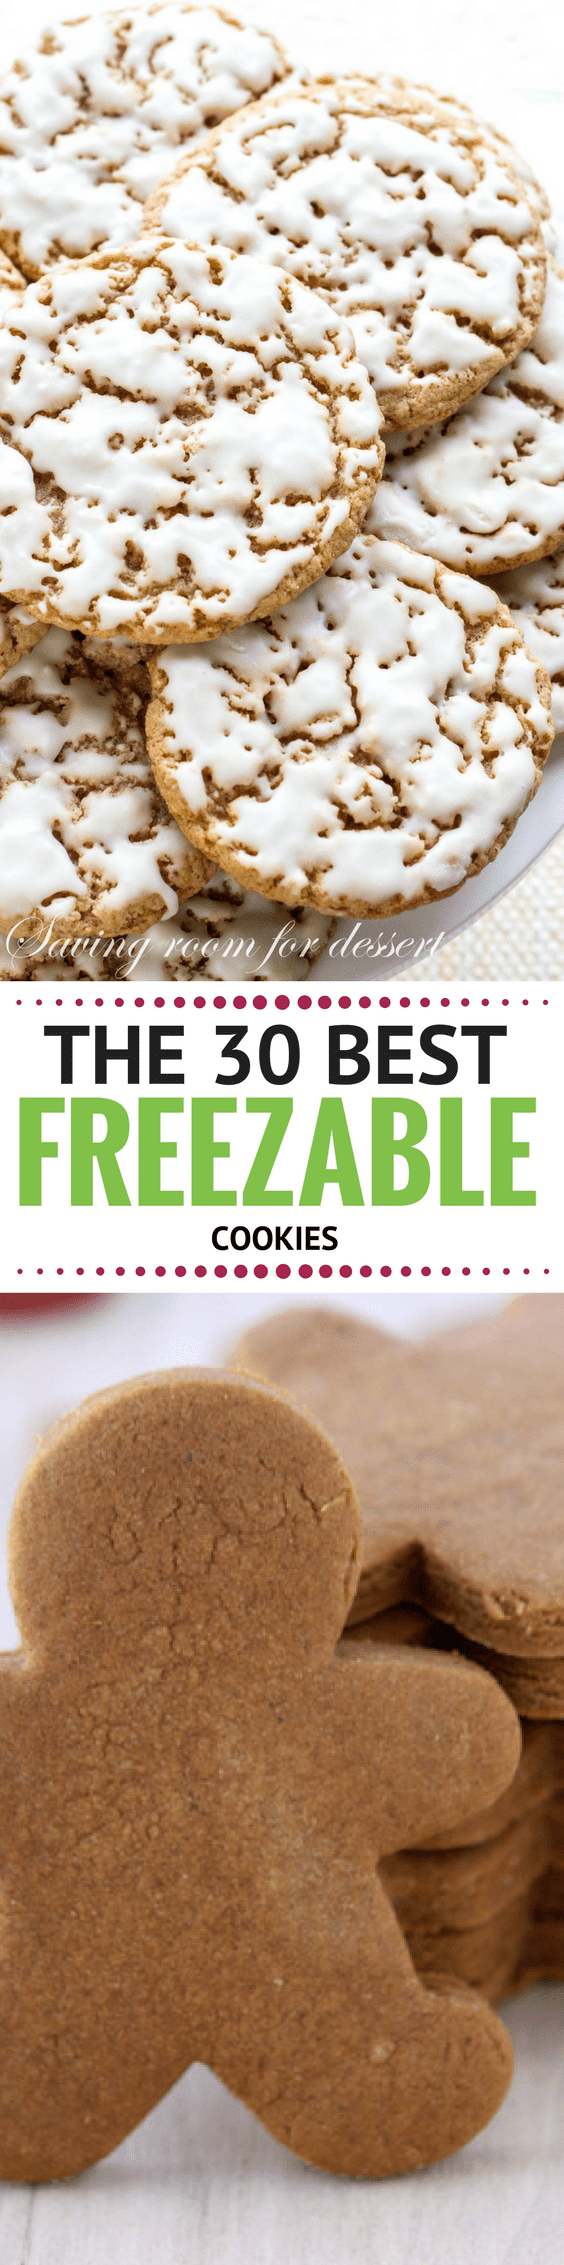 Ready...Set...Preheat! Here are the 30 BEST Freezable Cookies to get you set for the holidays in advance, yoohoo! These cookies are freezable, packable, giftable, and most importantly ~ IRRESISTIBLE! #holidaycookies #cookies #bestcookies #bestChristmascookies #christmascookes #recipe #freezercookies #easycookies #makeaheadcookies